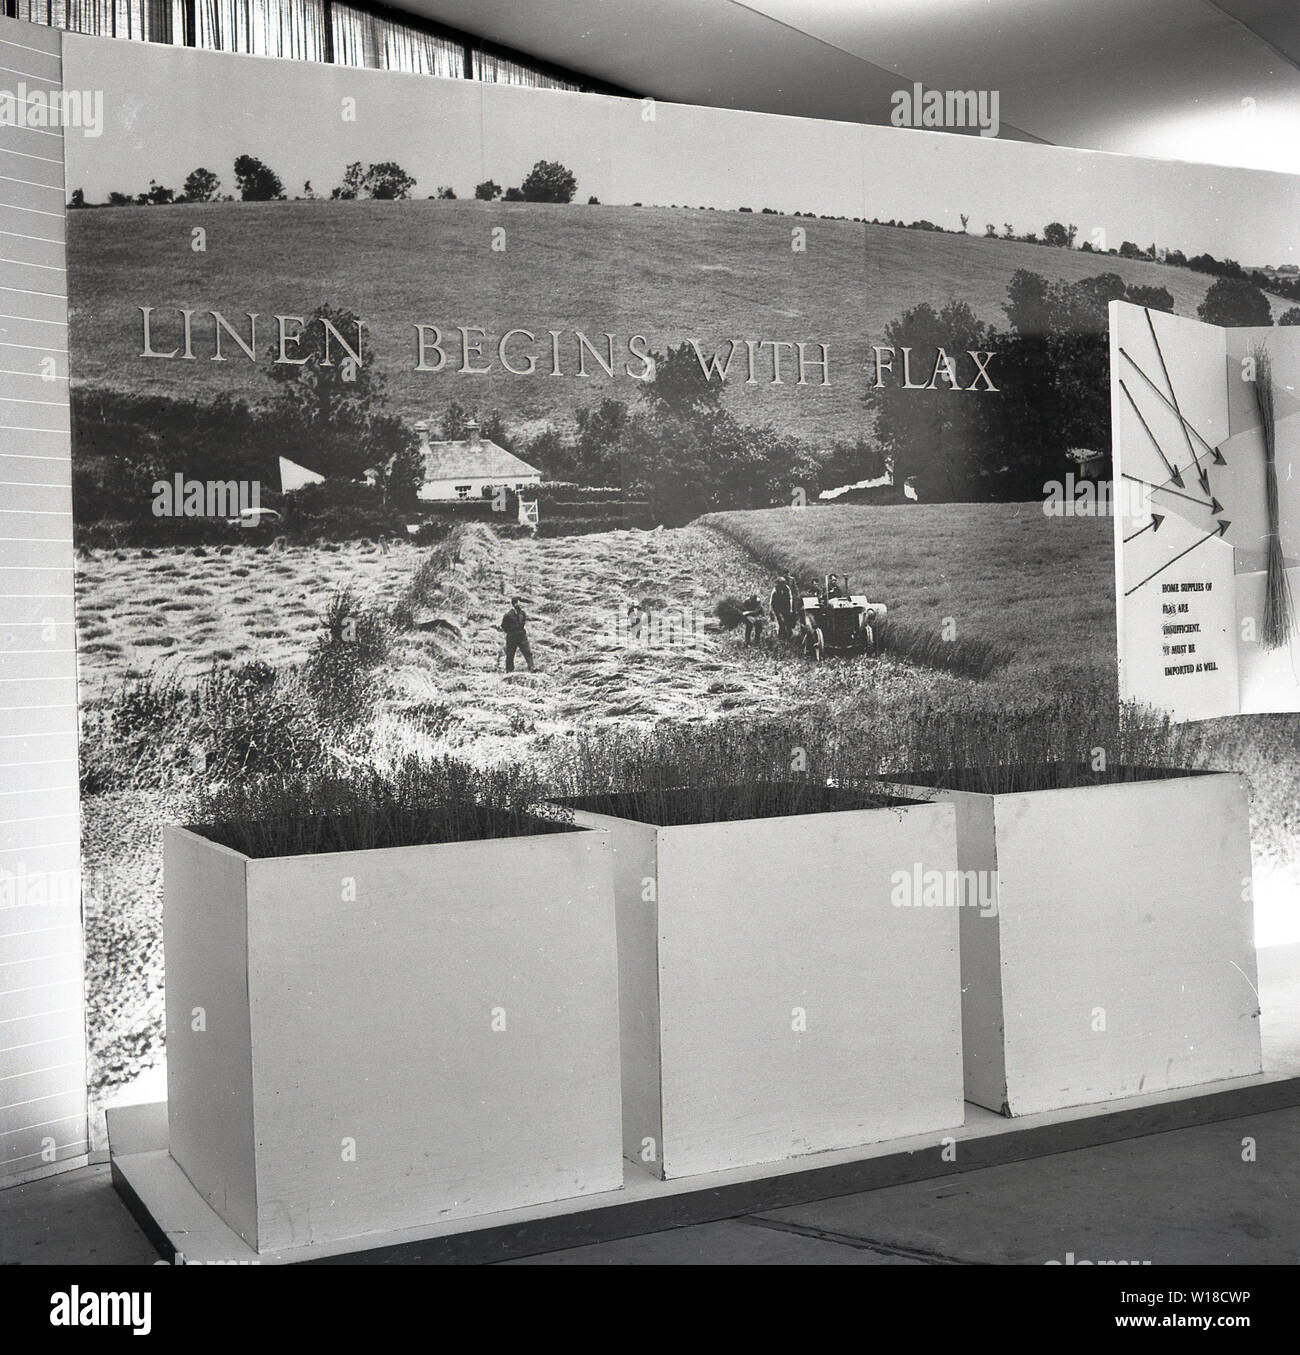 1960s, historical, Promotional display stand for Irish Linen at a Northern Ireland agricultural show with the caption, ' Linen Begins With Flax', stressing quality of Irish linen comes from the quality of the flax, at the time an important food and fiber crop cultivated in the country and one that had been grown in Ireland since the 11th century. - Stock Image